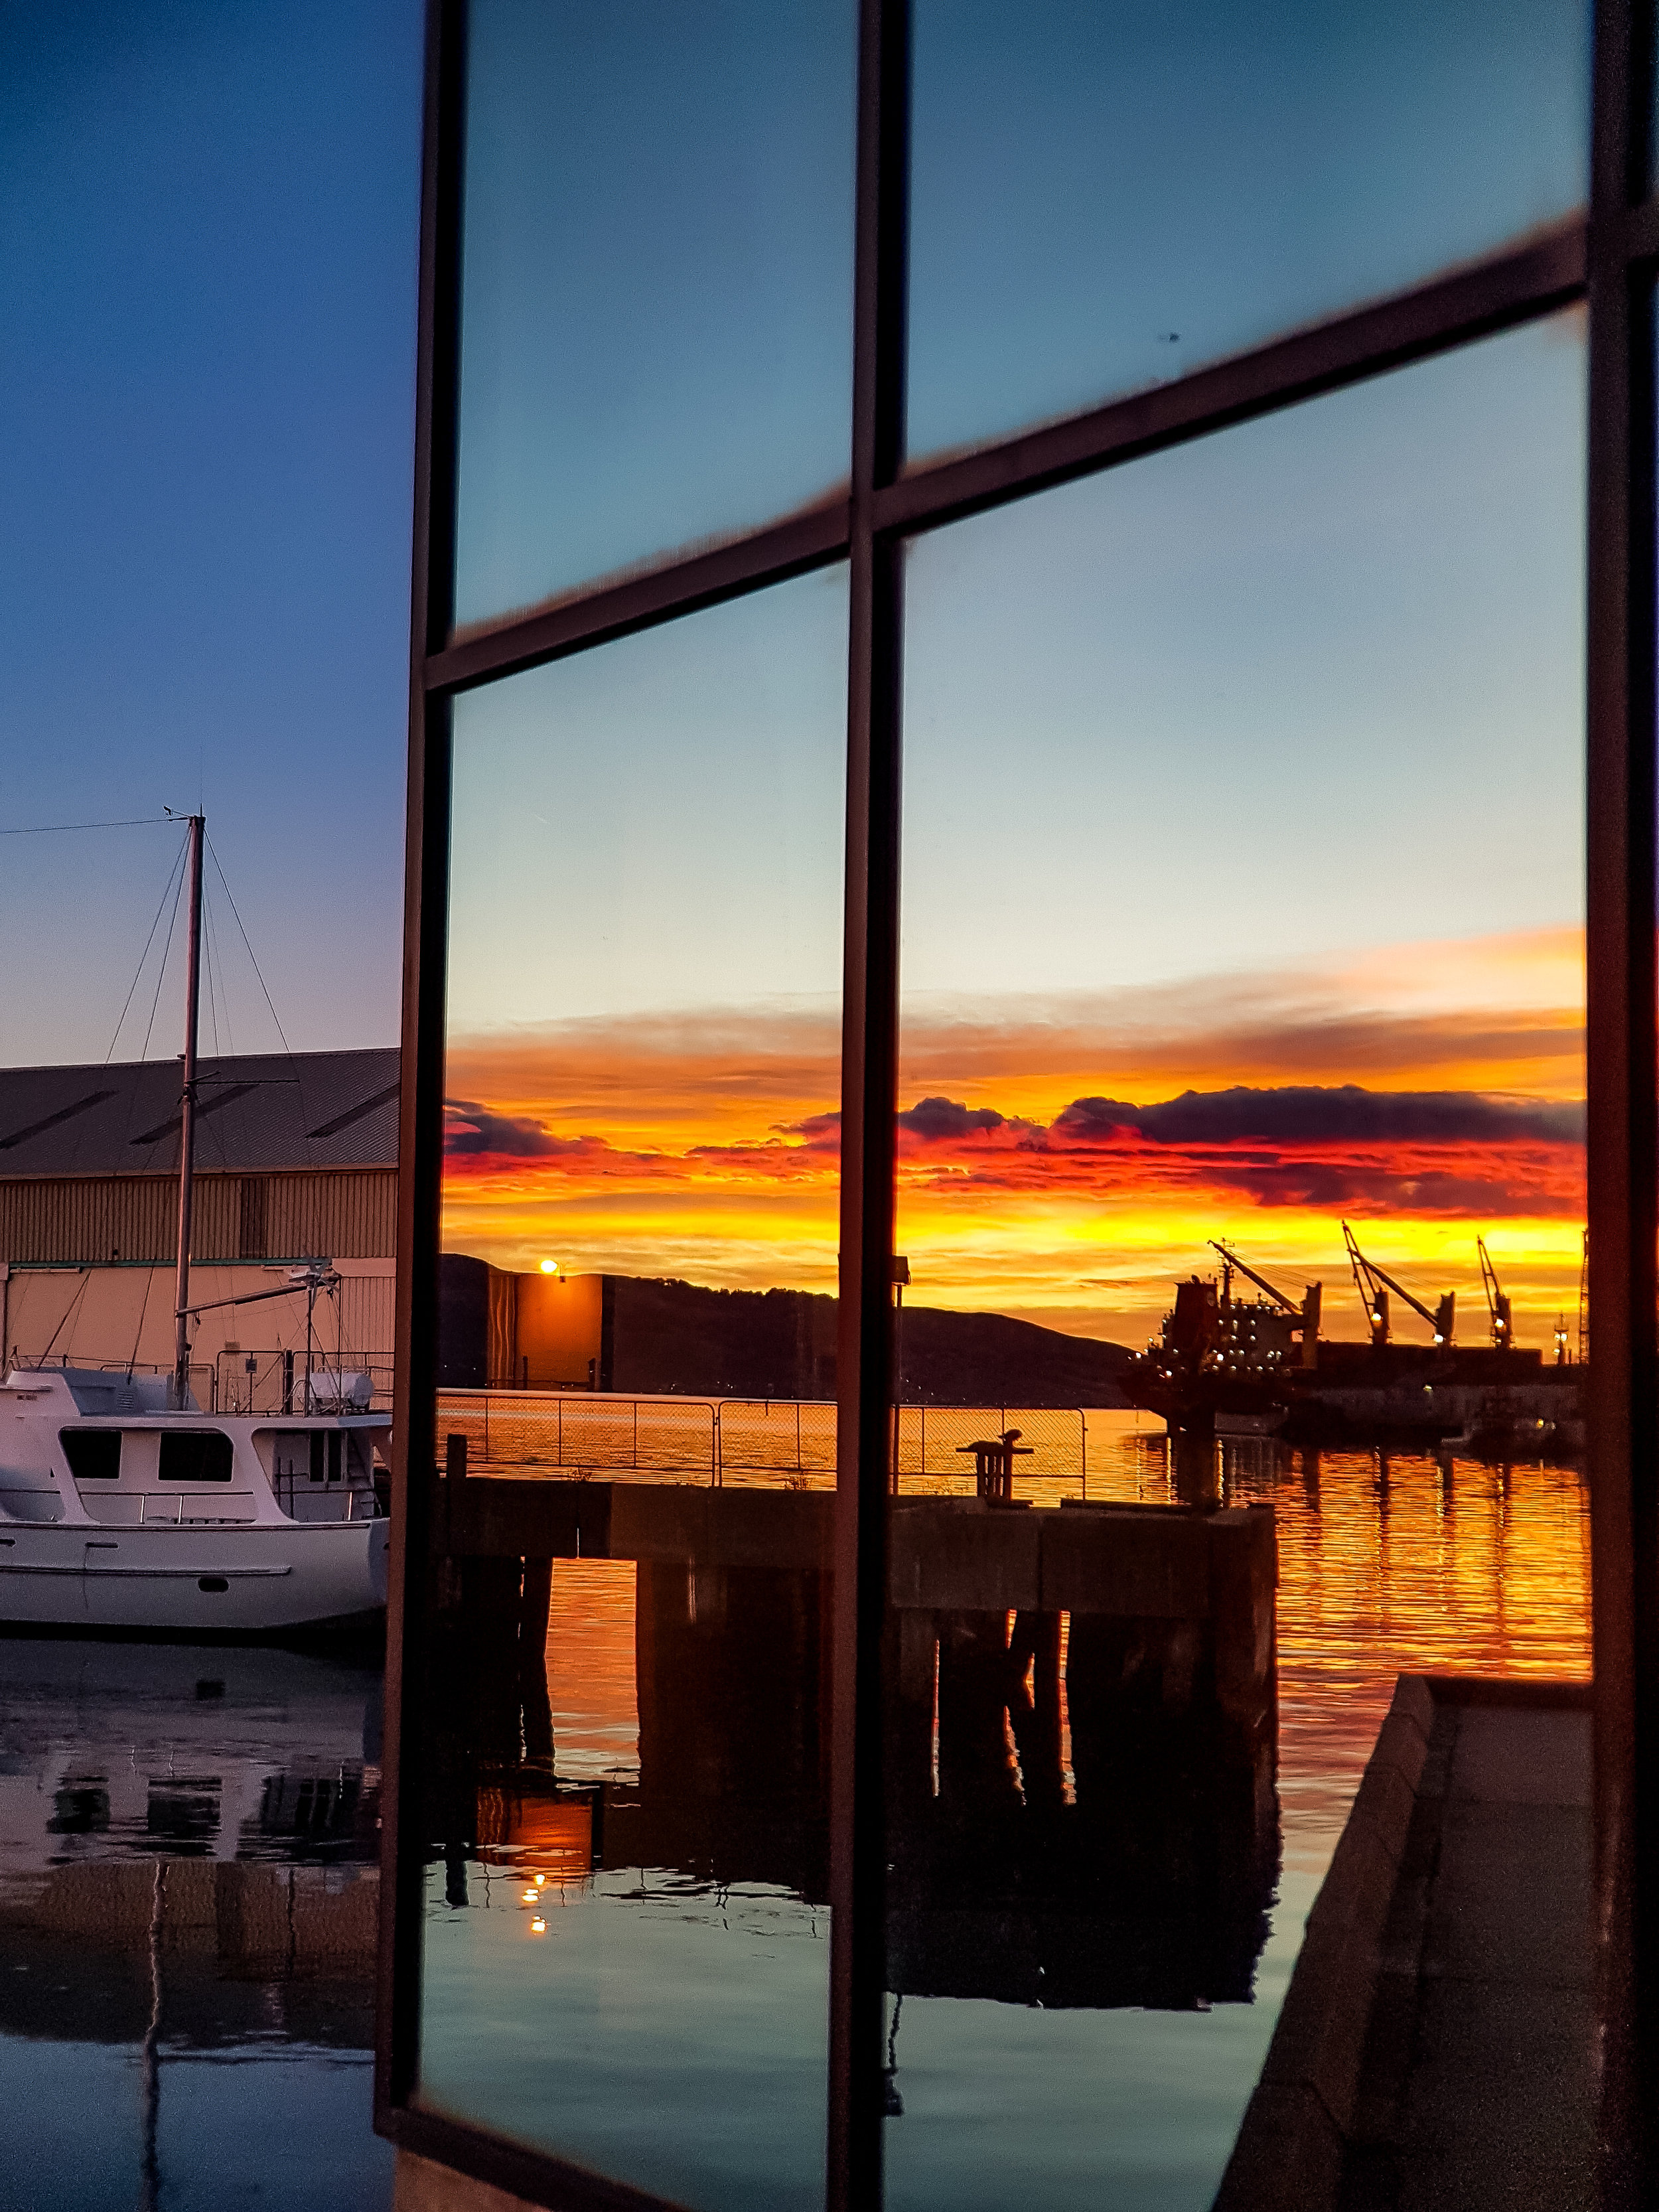 Boat at sunrise reflecting in the Jade building Dunedin